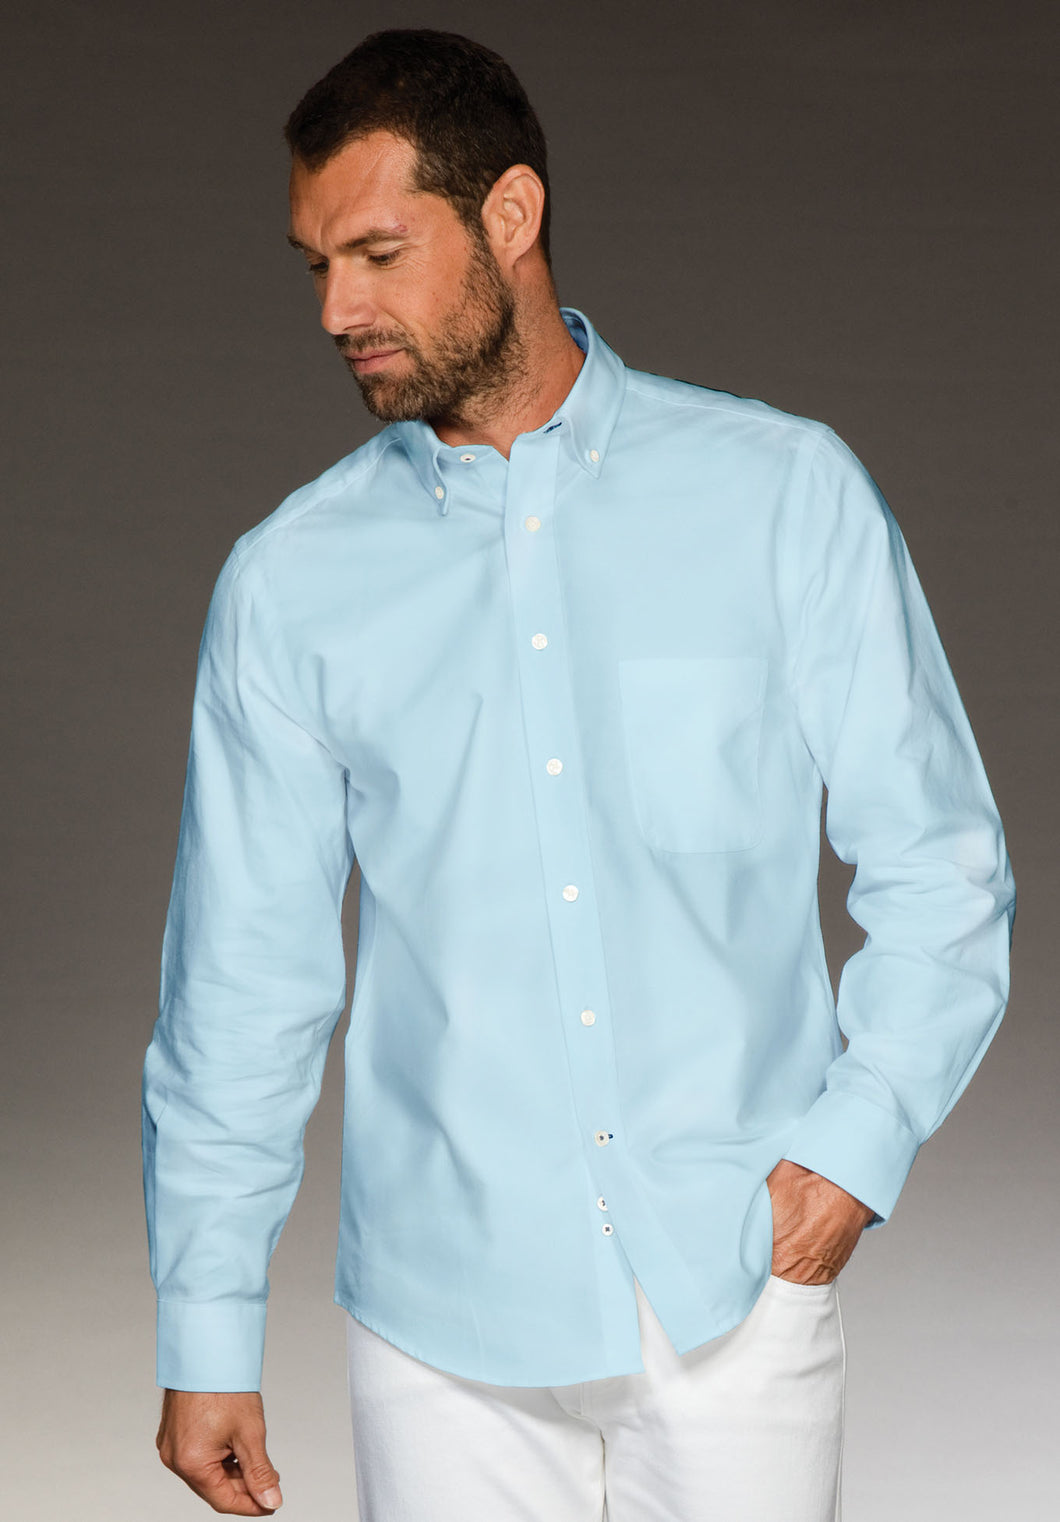 Men's shirt in Turquoise 100% cotton